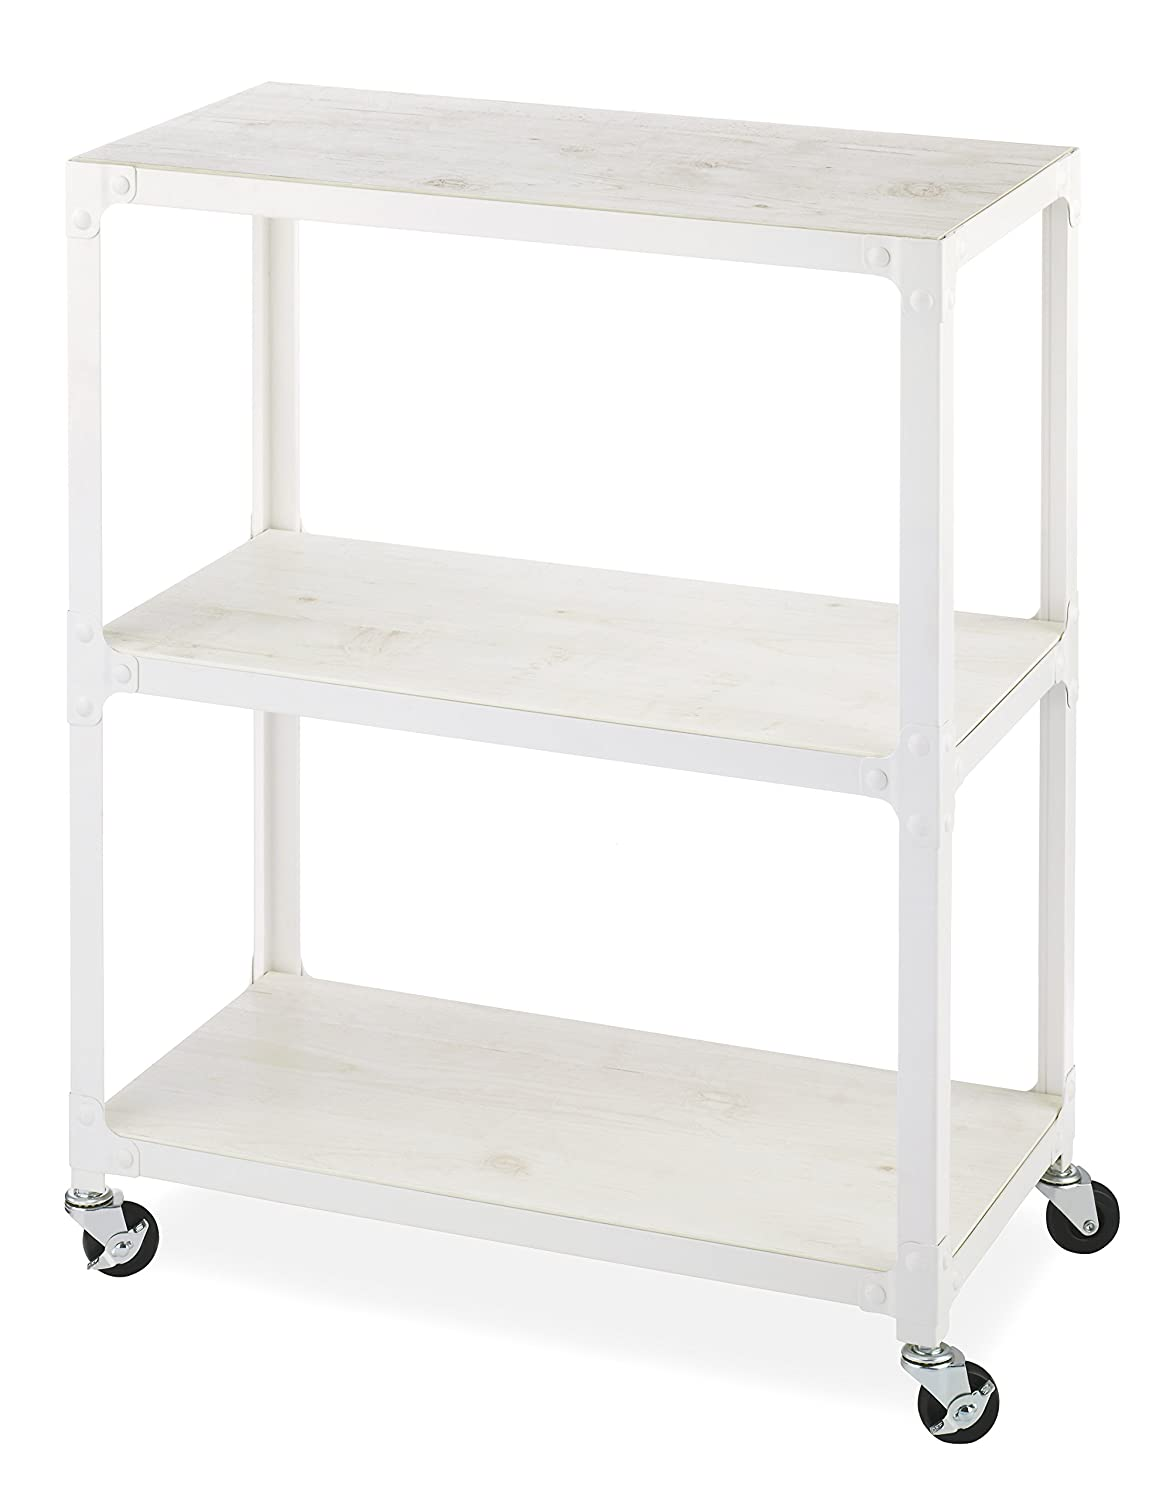 b04b8abd633a Whitmor 3-Tier Metal & Wood Cart-White